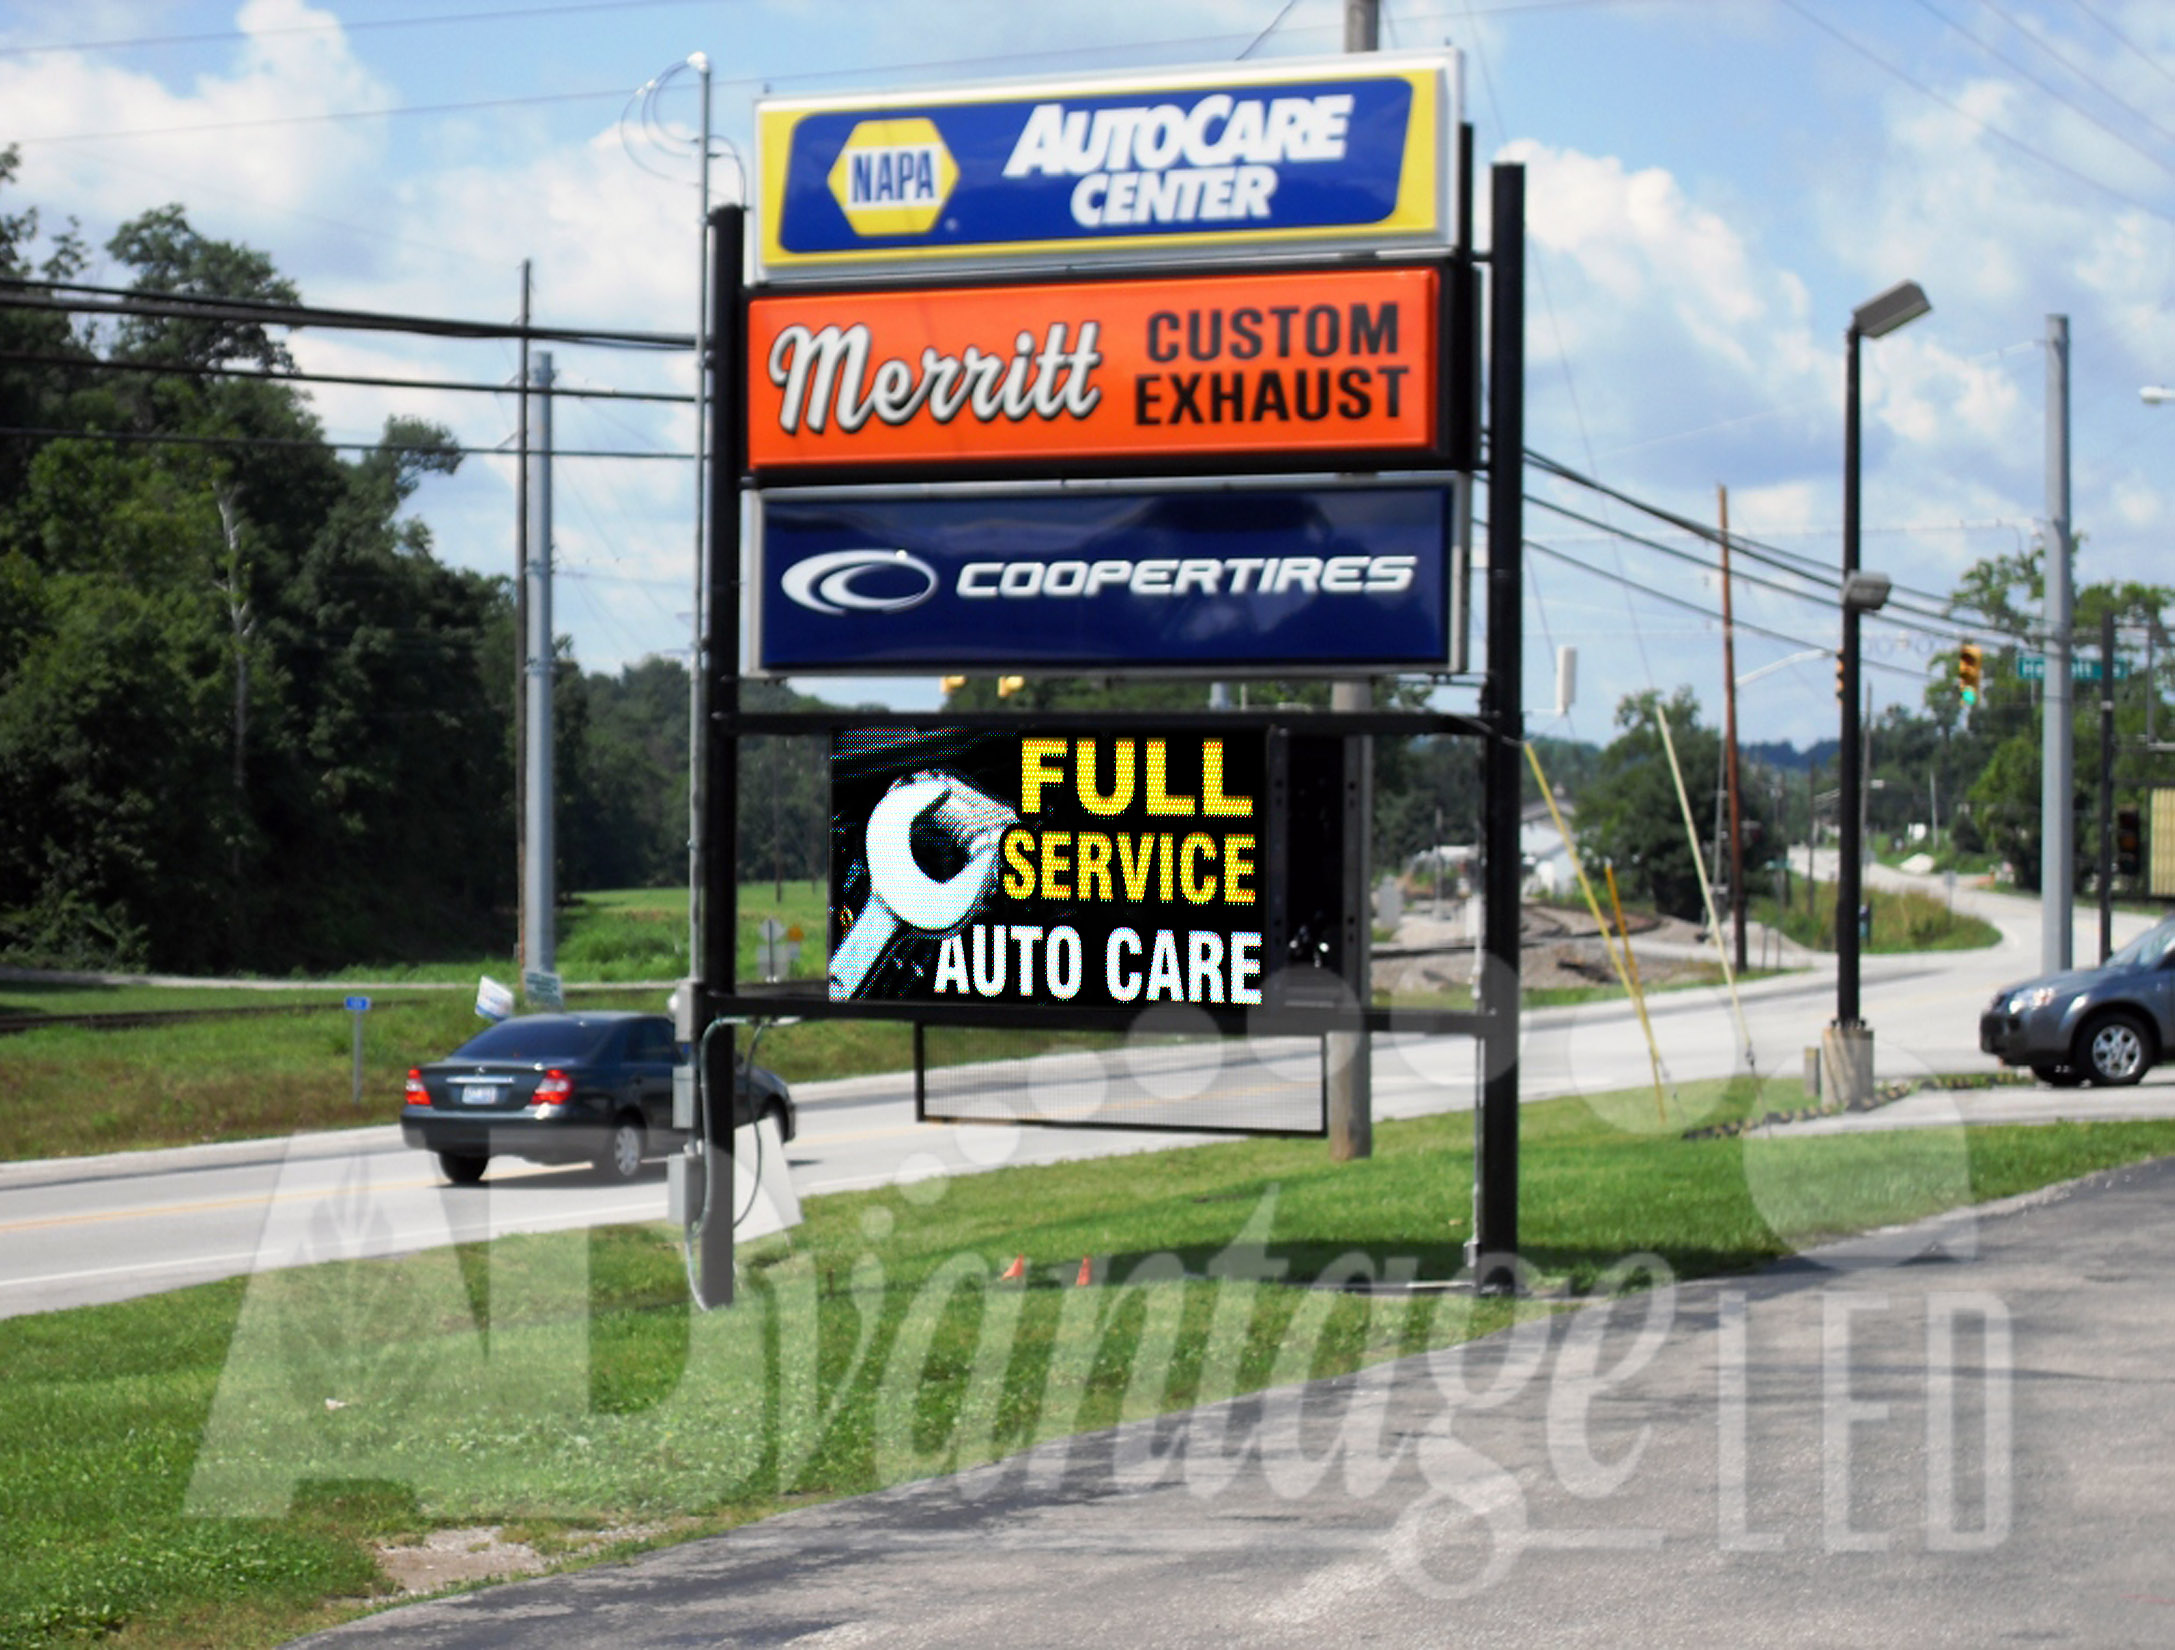 Automotive Repair Signs : Automotive repair shop sign imgkid the image